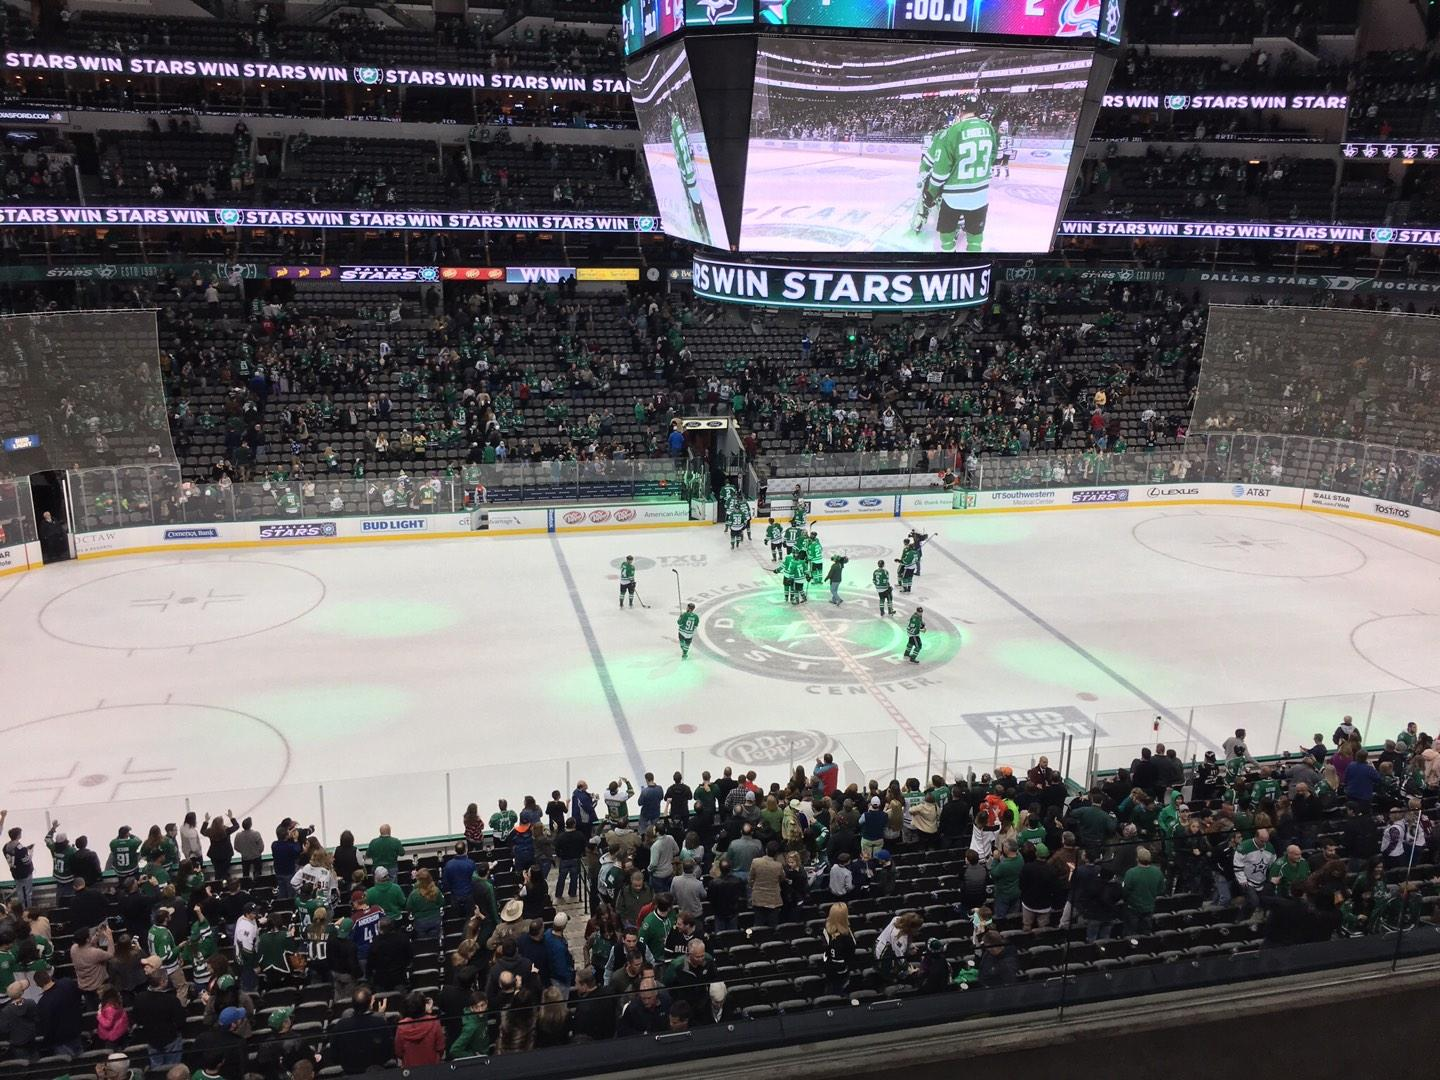 American Airlines Center Section 211 Row D Seat 4